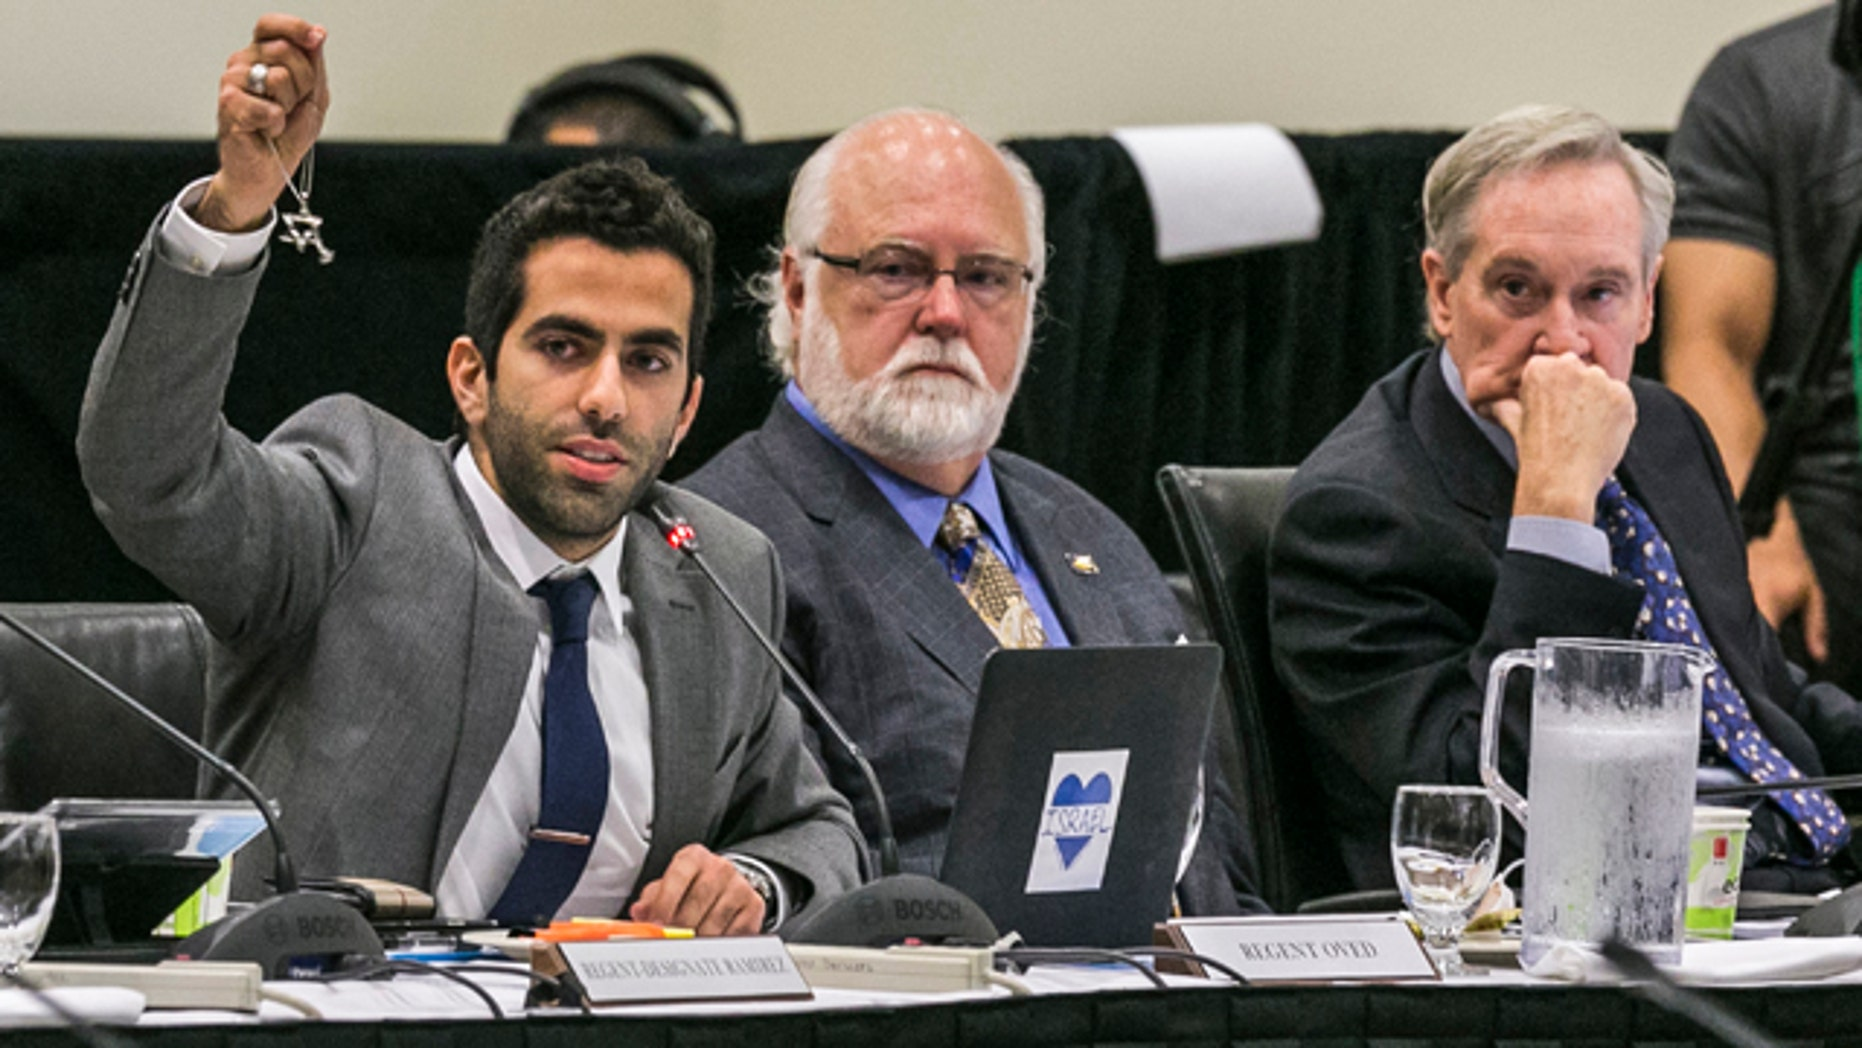 Sept. 17, 2015: University of Californias Student Regent, Abraham Oved, left, holds up a Star of David as he addresses the UC Irvine Board of Regents meeting at the UC Irvine Student Center to discuss a controversial policy statement on intolerance at the campus in Irvine, Calif. (AP Photo/Damian Dovarganes)